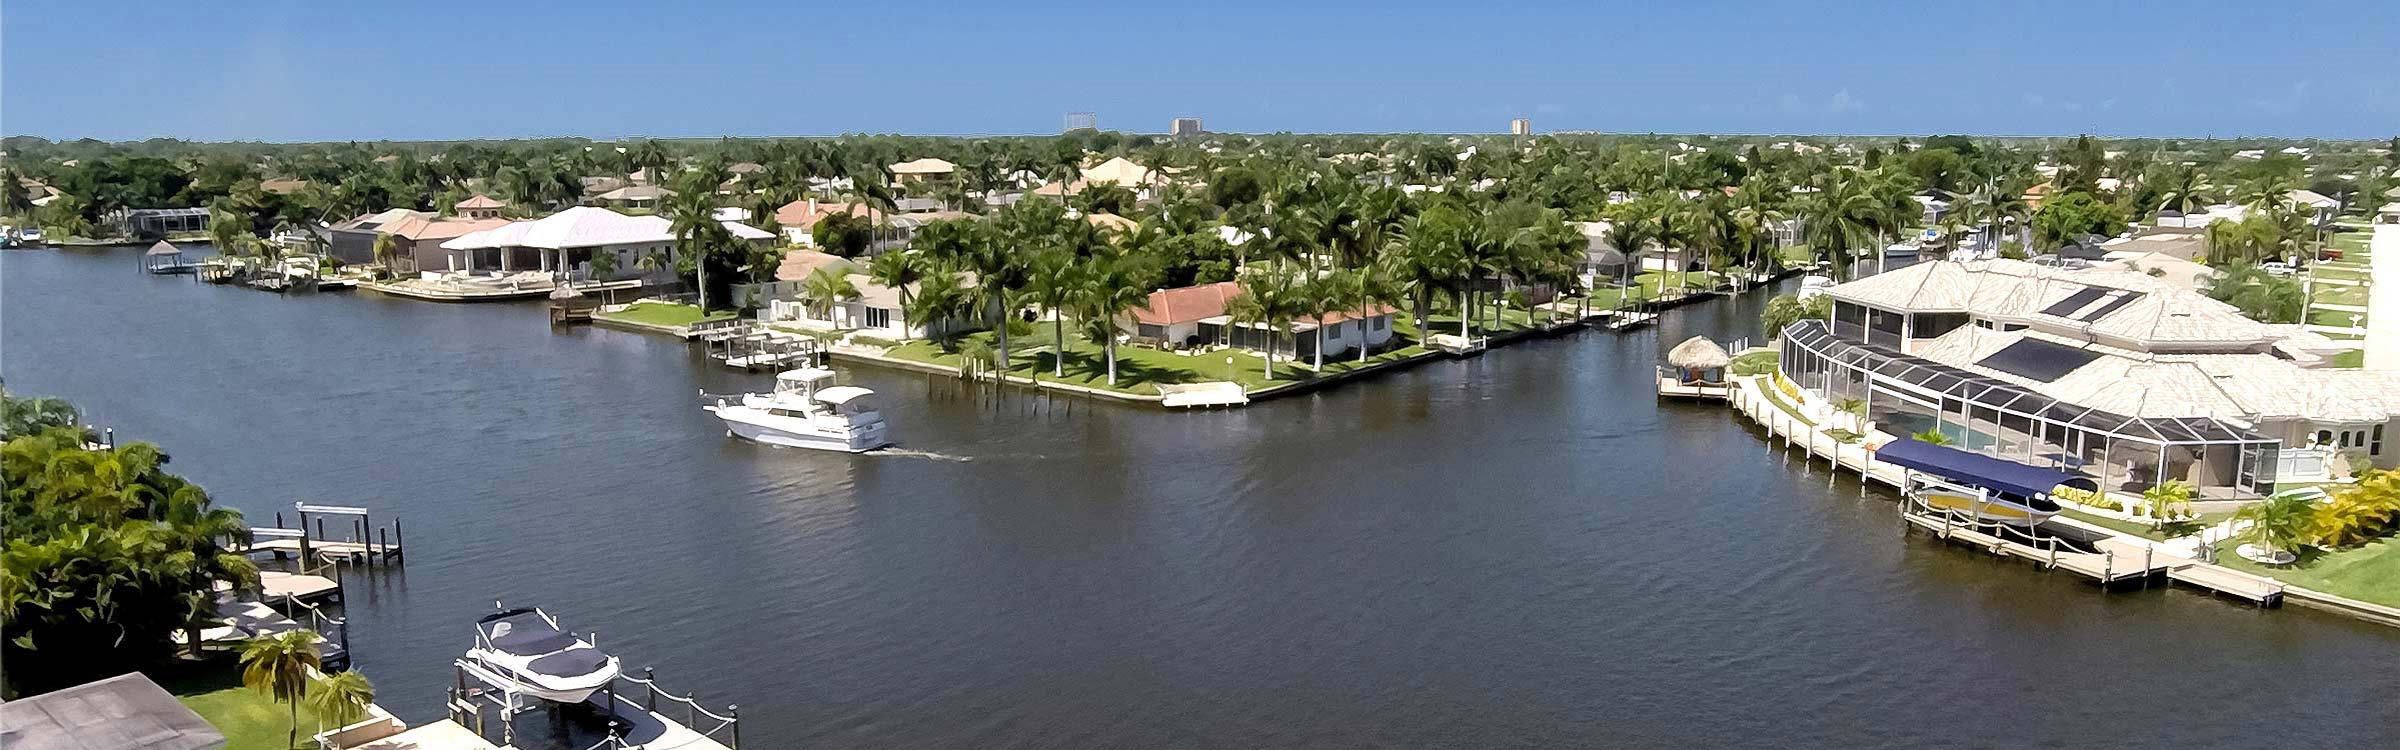 Cape Coral | Florida - the Venice of Florida